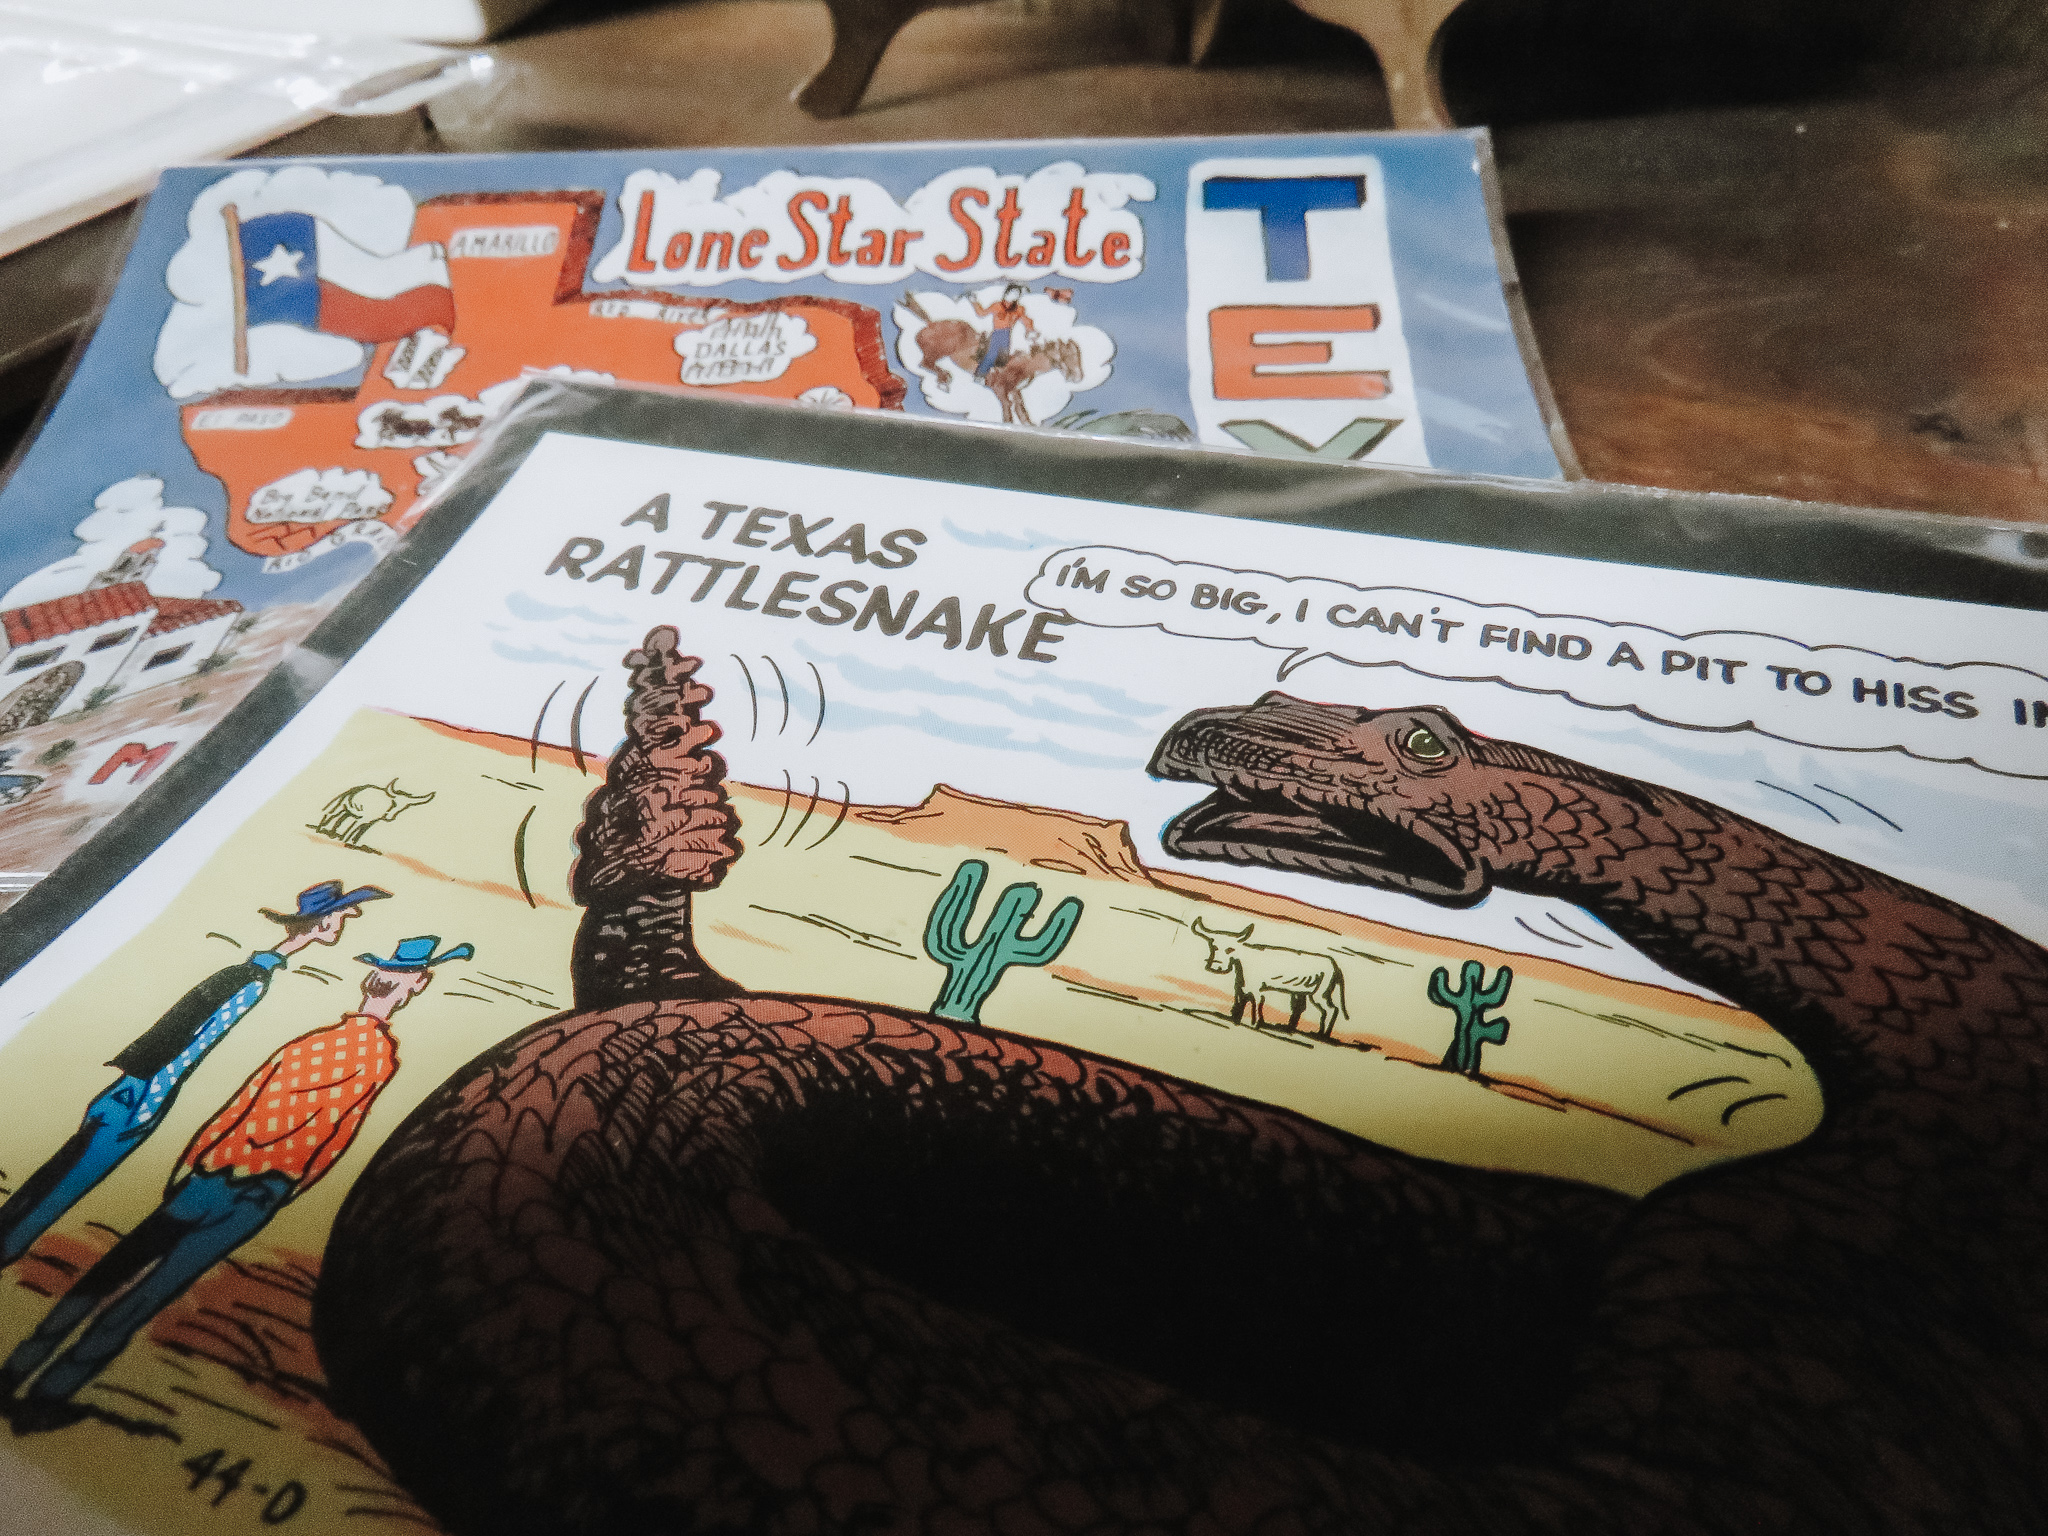 Post Cards - Send some snail mail of your travels to your friends, or save them as a souvenir! Post Cards are a great way to preserve your memories.